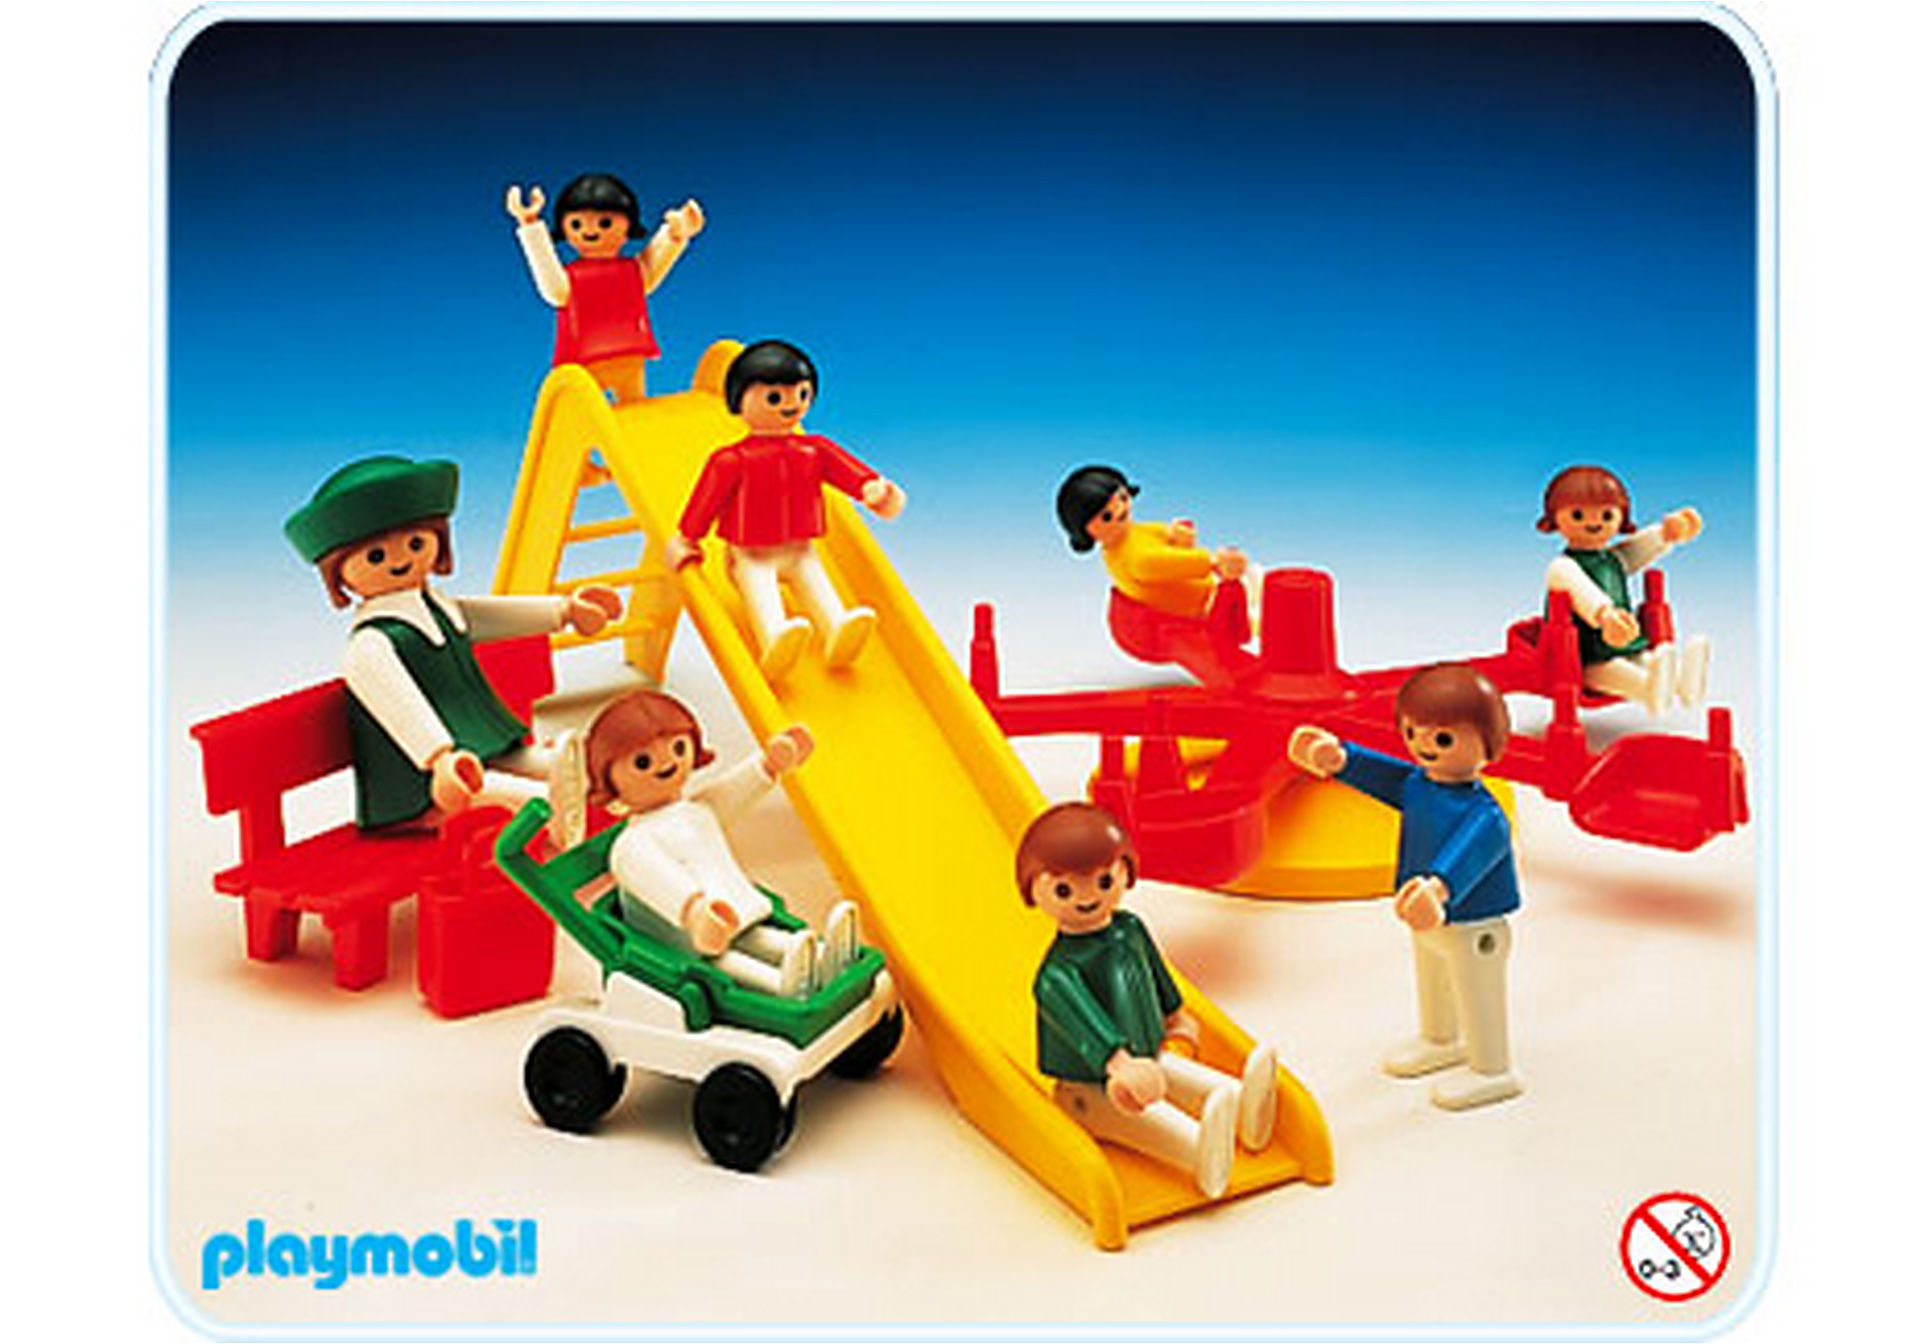 http://media.playmobil.com/i/playmobil/3416-B_product_detail/Kinderspielplatz